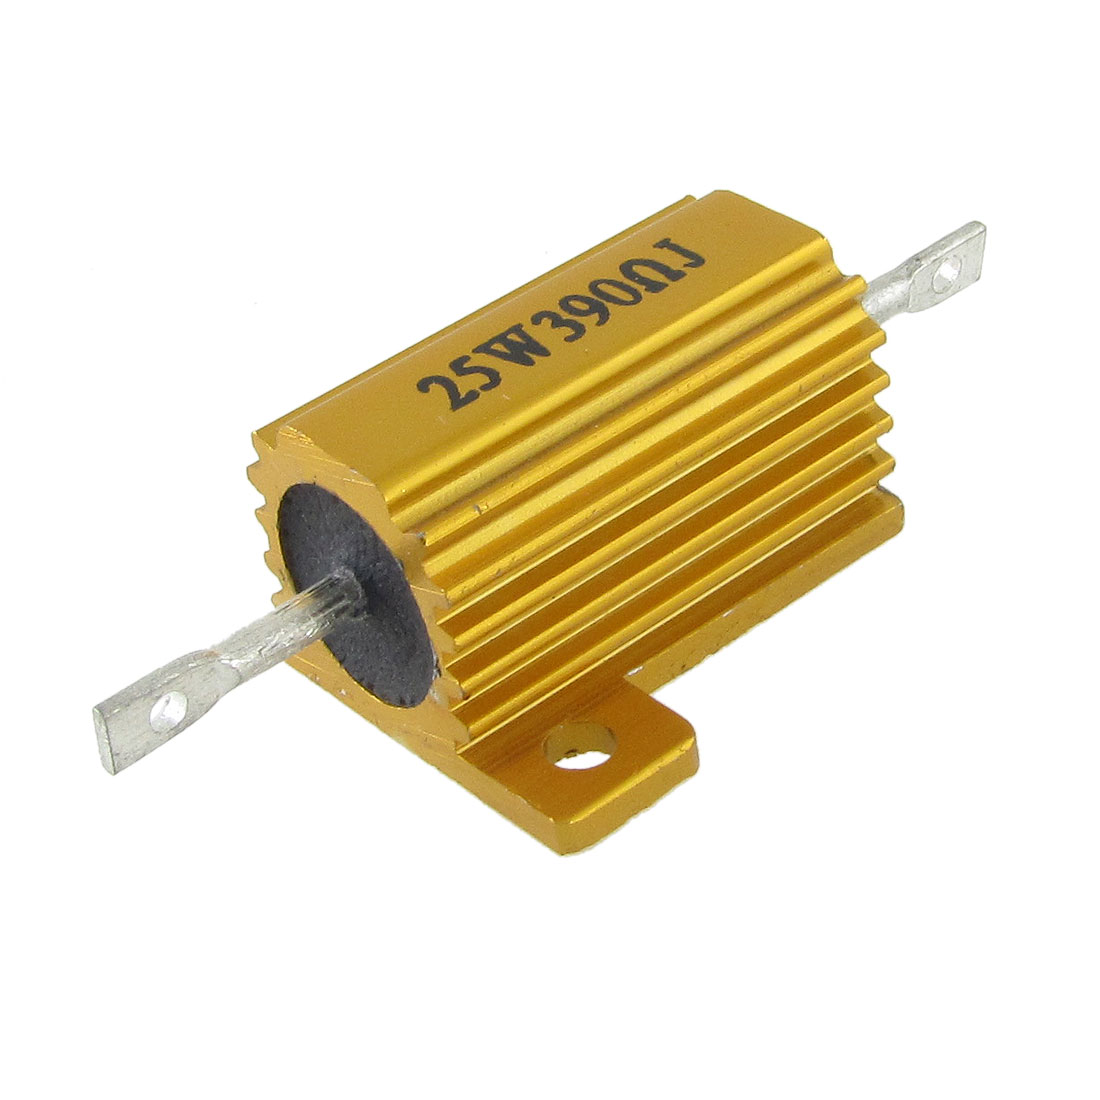 25W 390 Ohm Aluminum Housed Wirewound Power Resistor Gold Tone